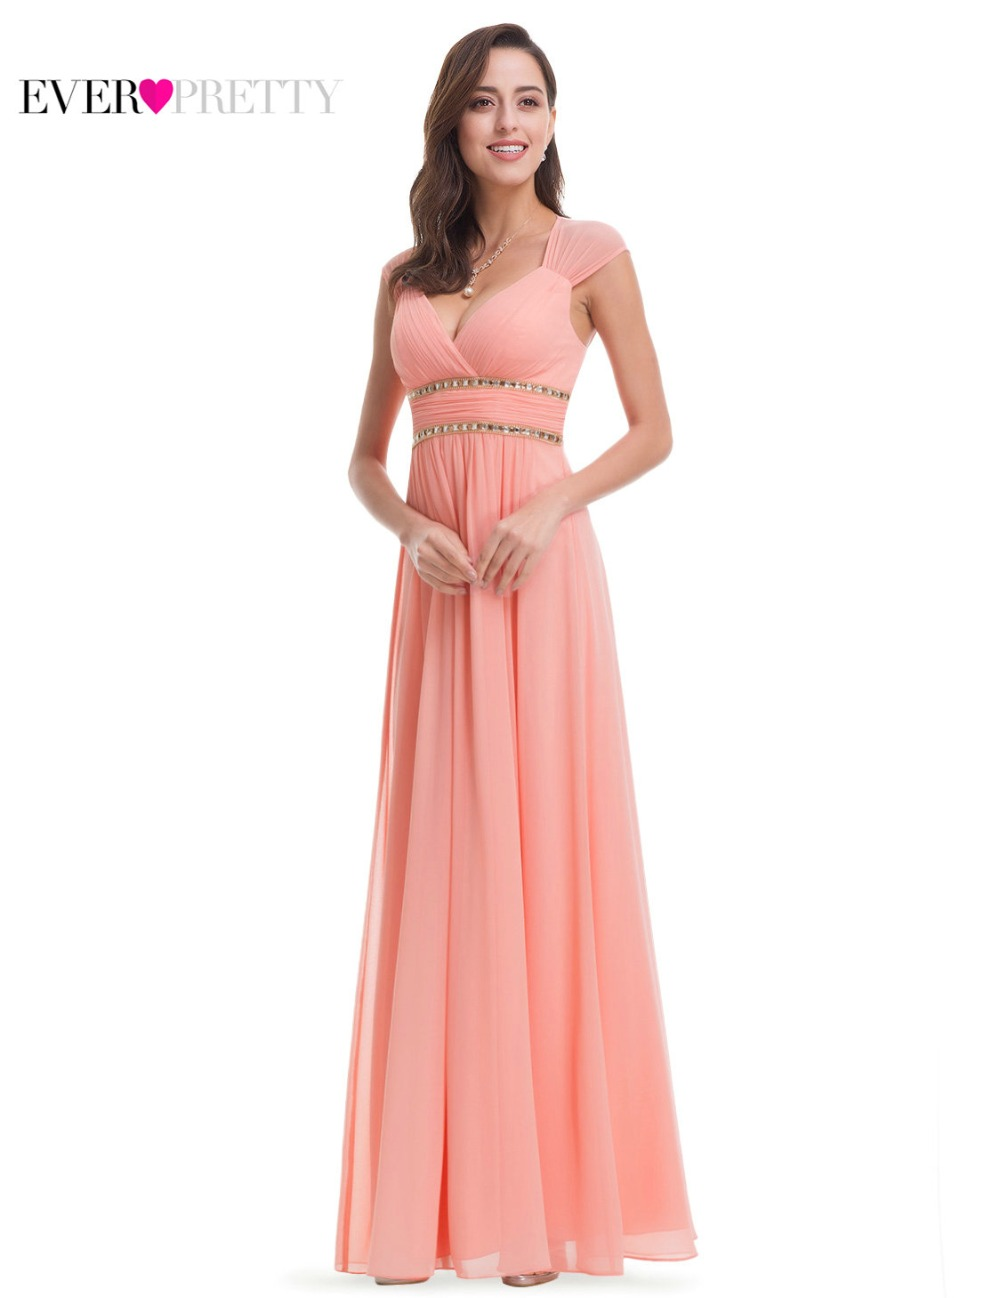 Ever pretty 2017 clearance style women elegant bridesmaid for Wedding party dresses for women